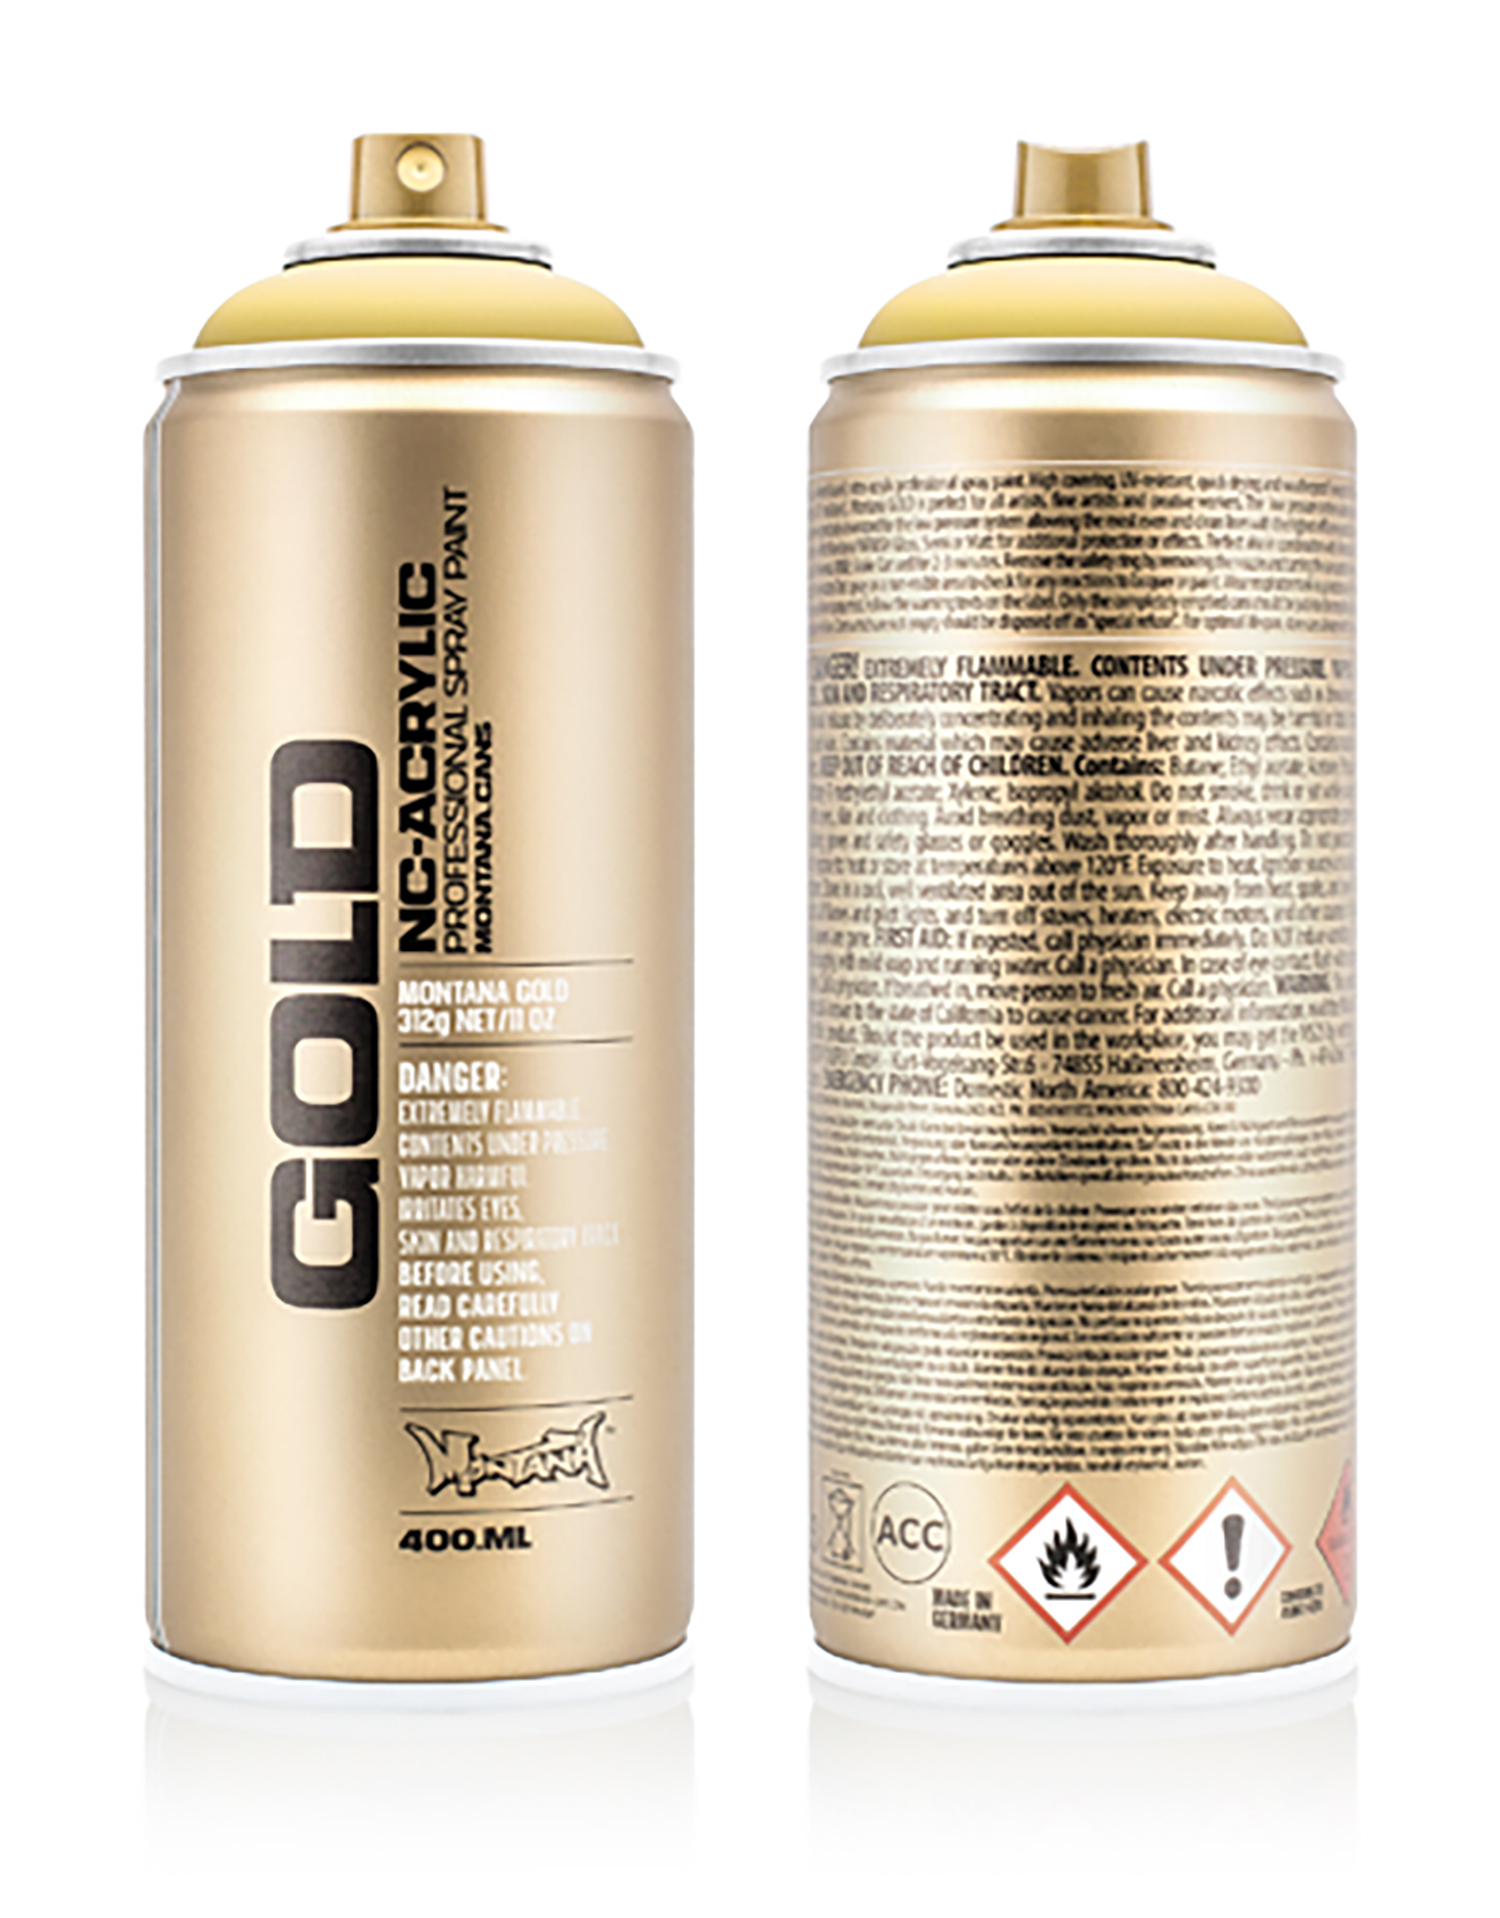 MONTANA-GOLD-SPRAY-400ML-G-1200